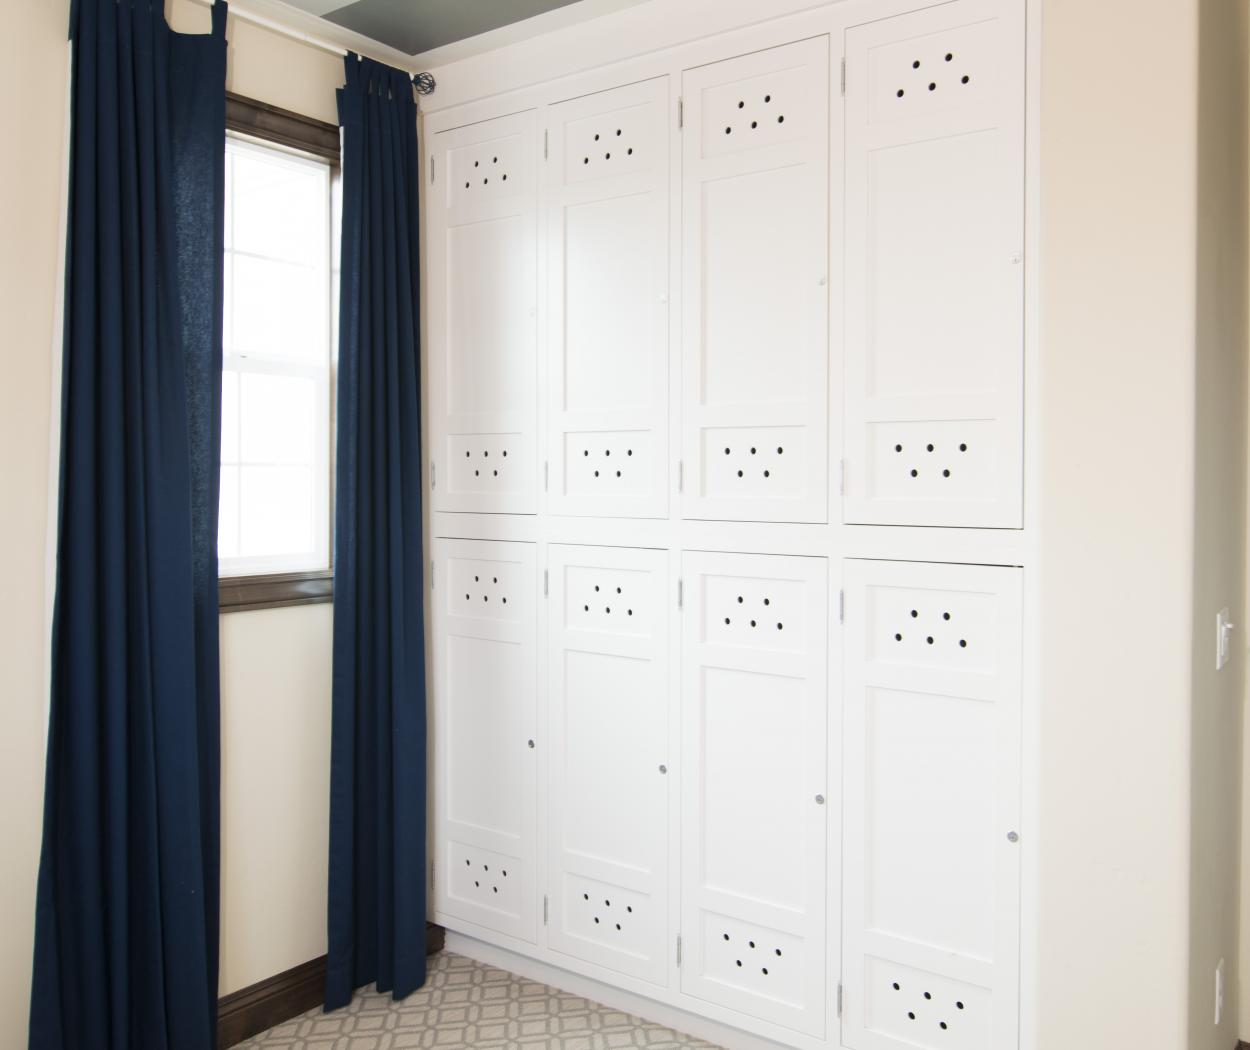 Beautiful White Built-In Lockers for Extra Storage